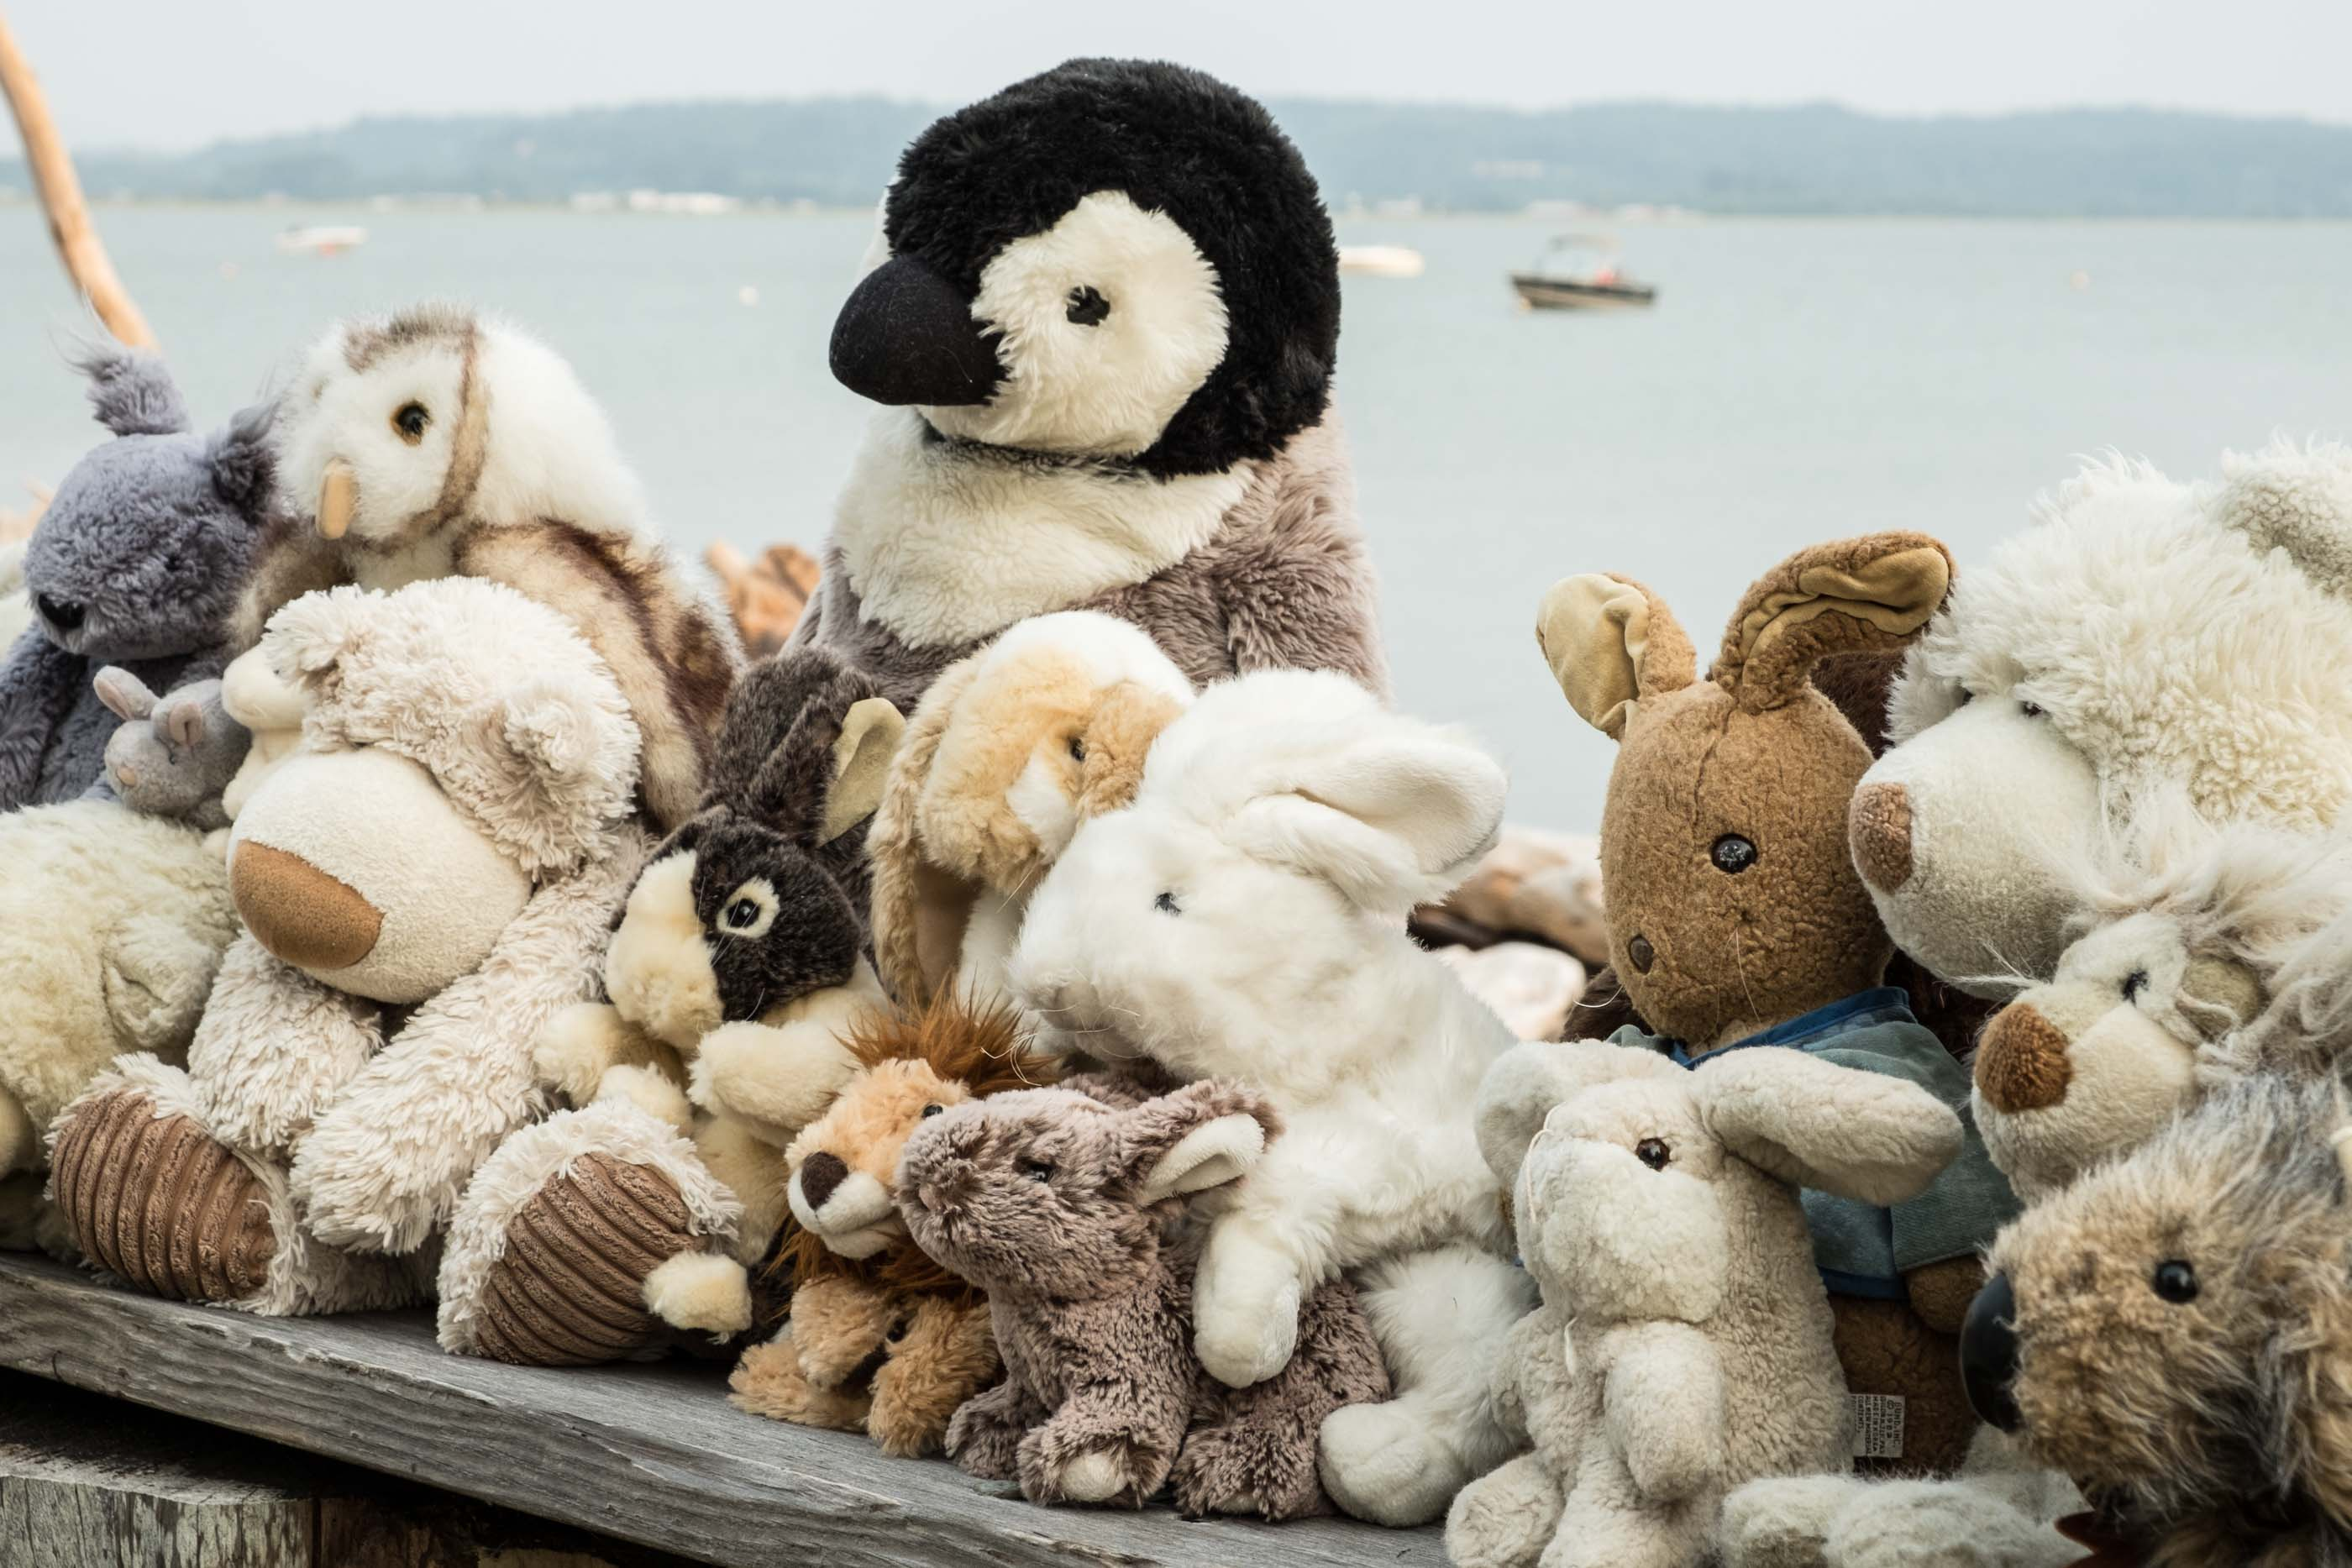 group of stuffed animals ready for adoption